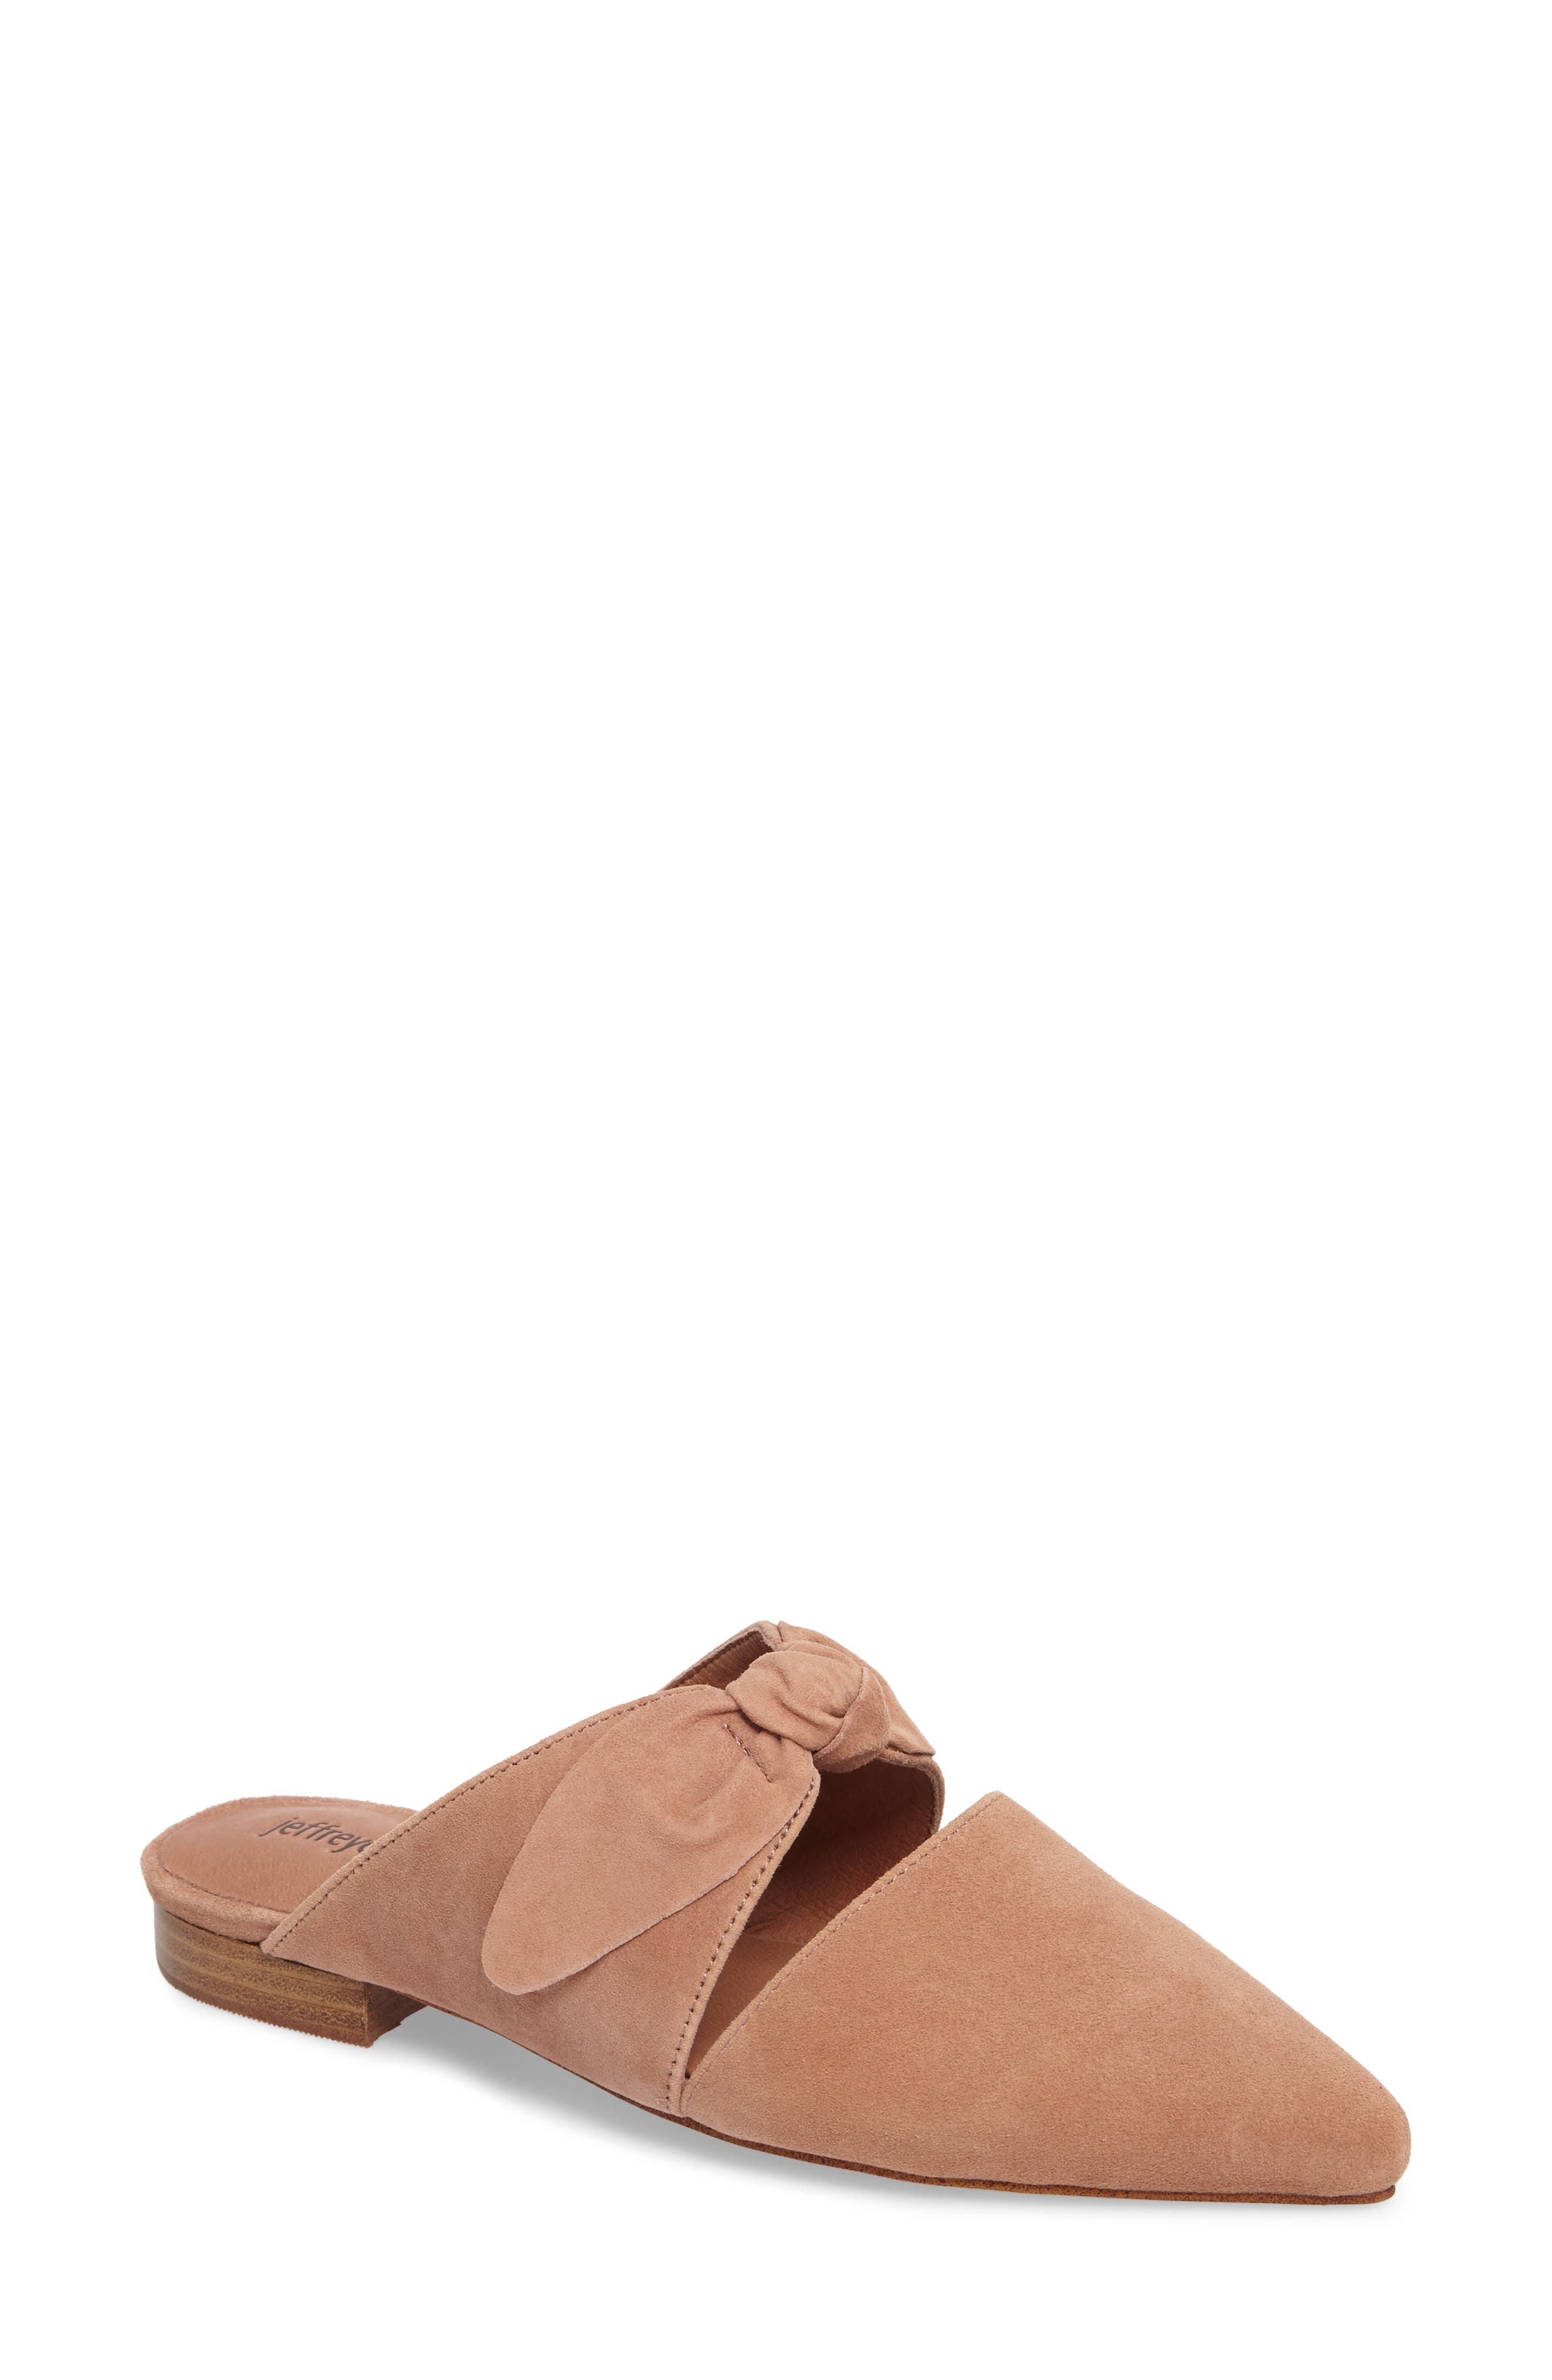 Charlin Bow Mule,                             Main thumbnail 1, color,                             Blush Suede